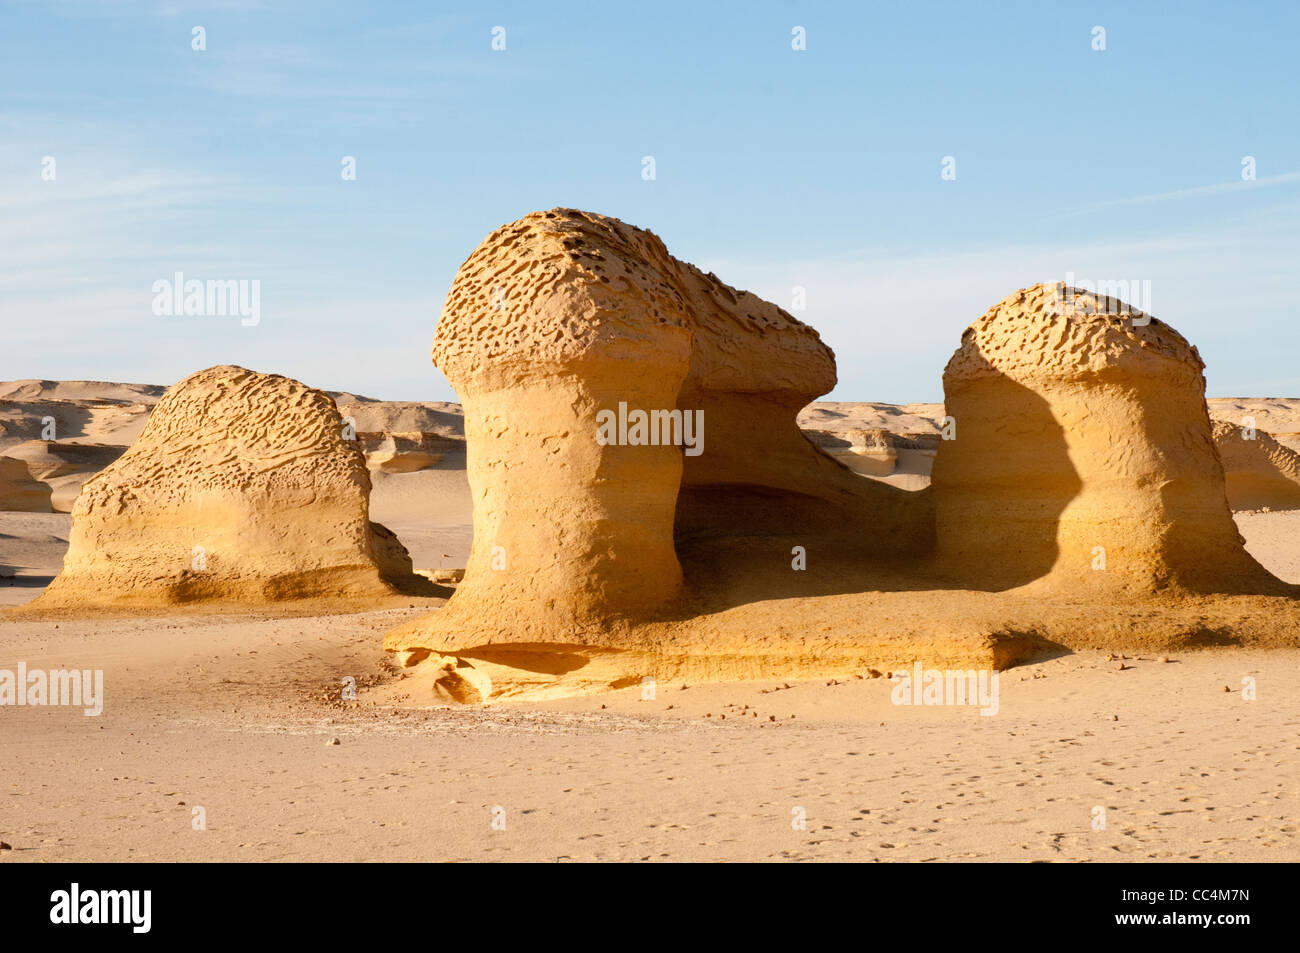 Desert landforms formed by wind erosion at Wadi al-Hitan, Valley of the Whales - Stock Image